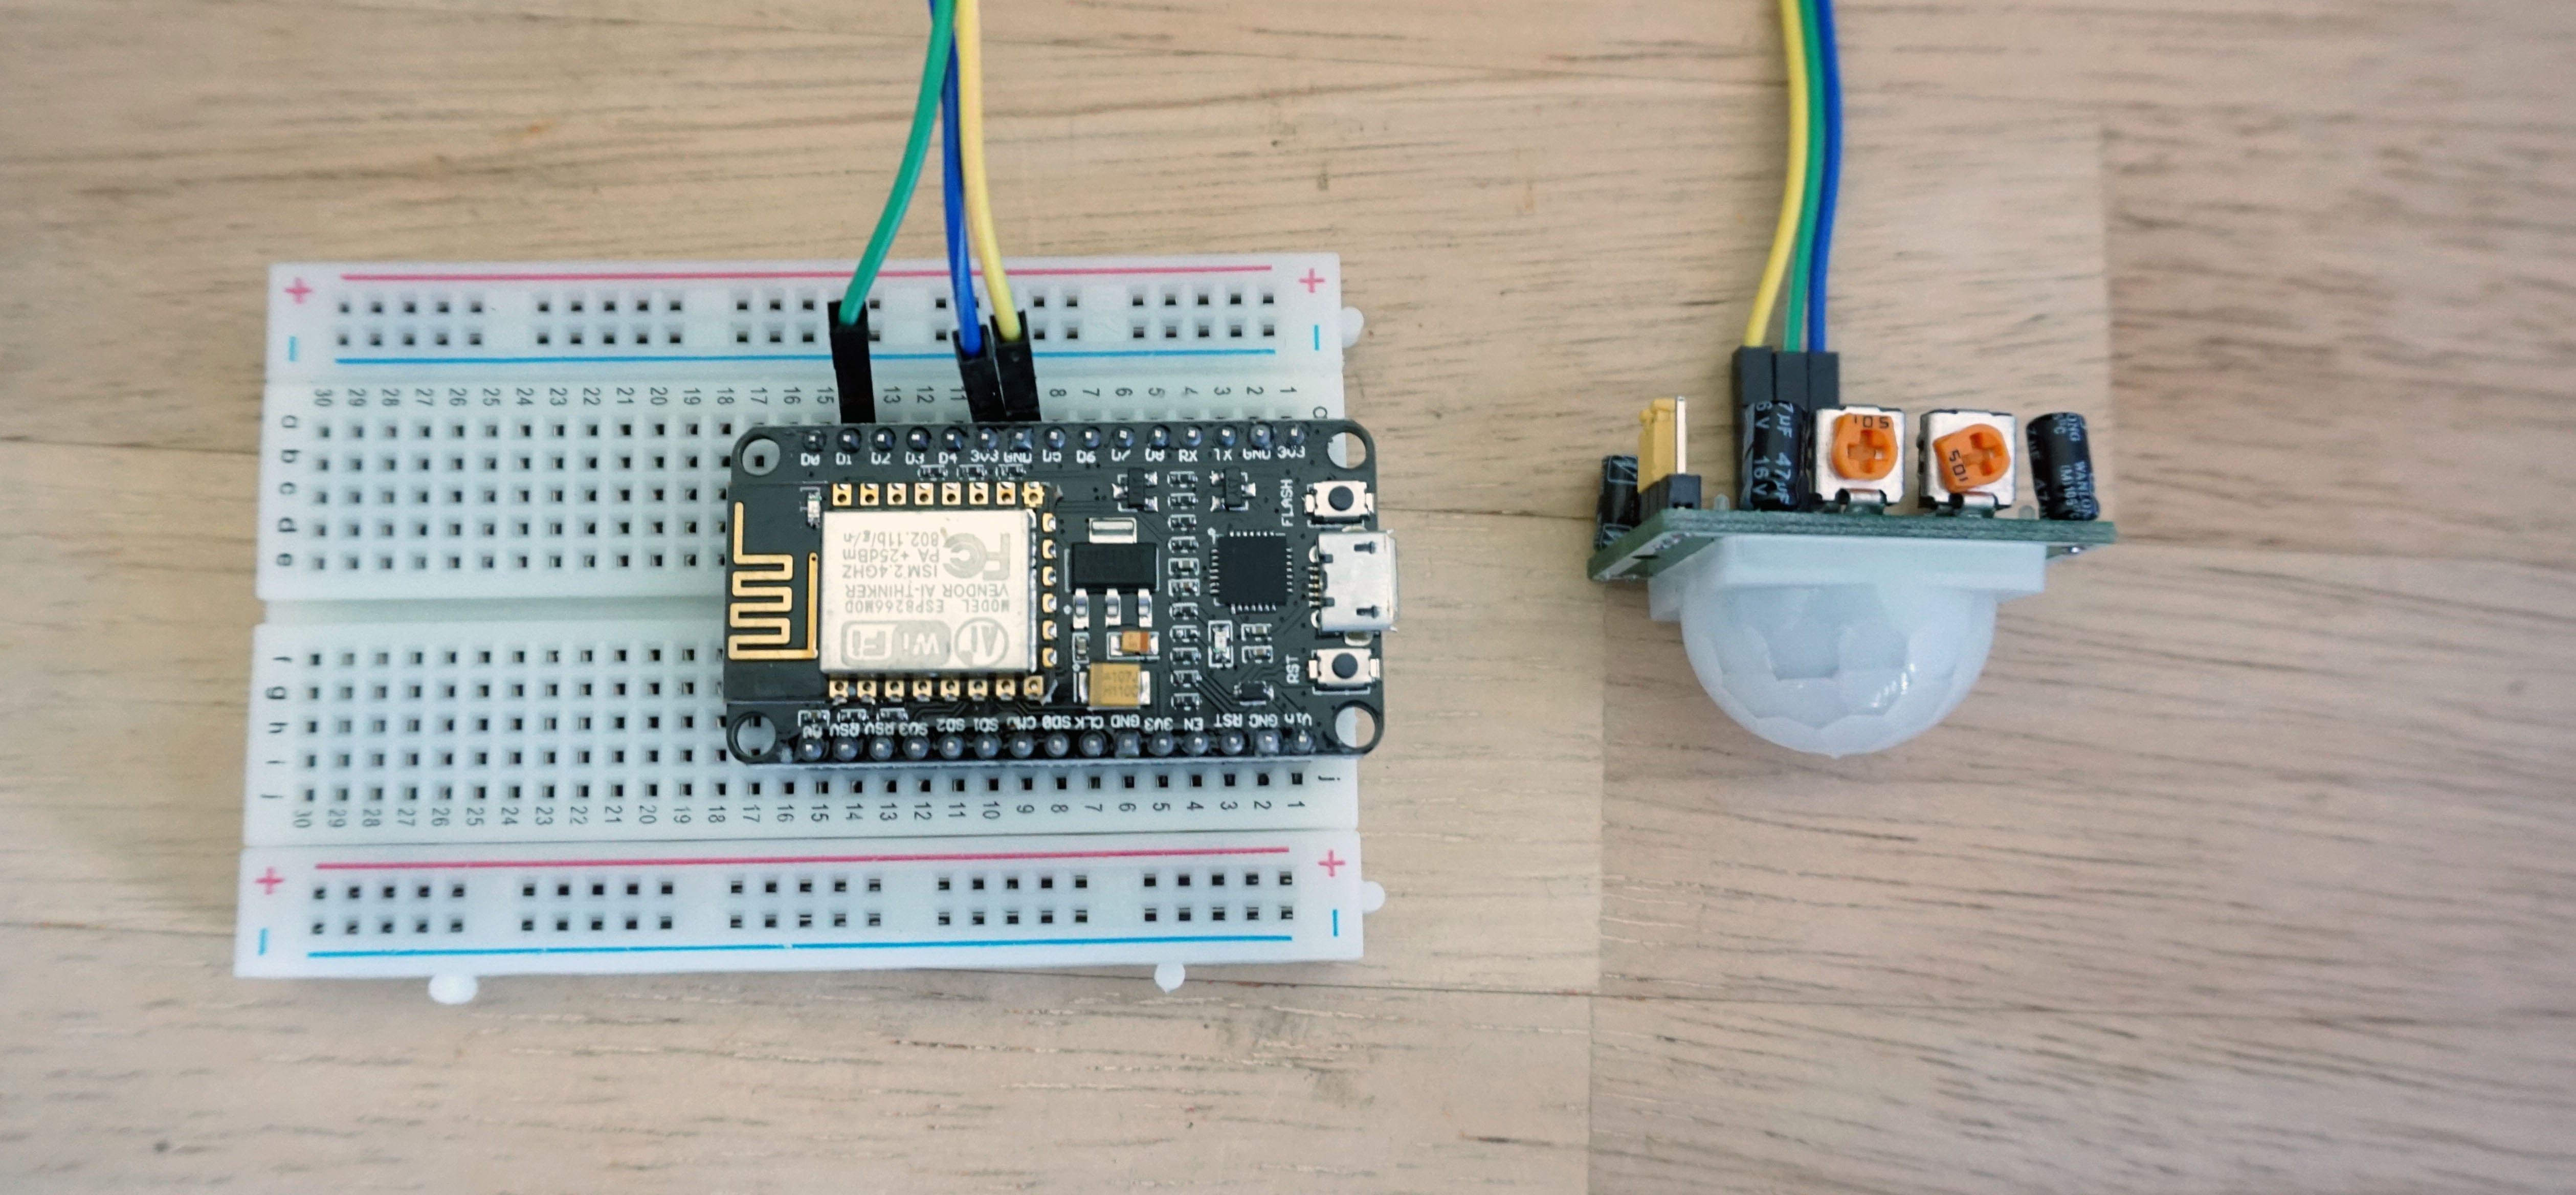 Motion Sensor Kit Instructions Losant Iot Dev Kits Getting Detector Wiring Image